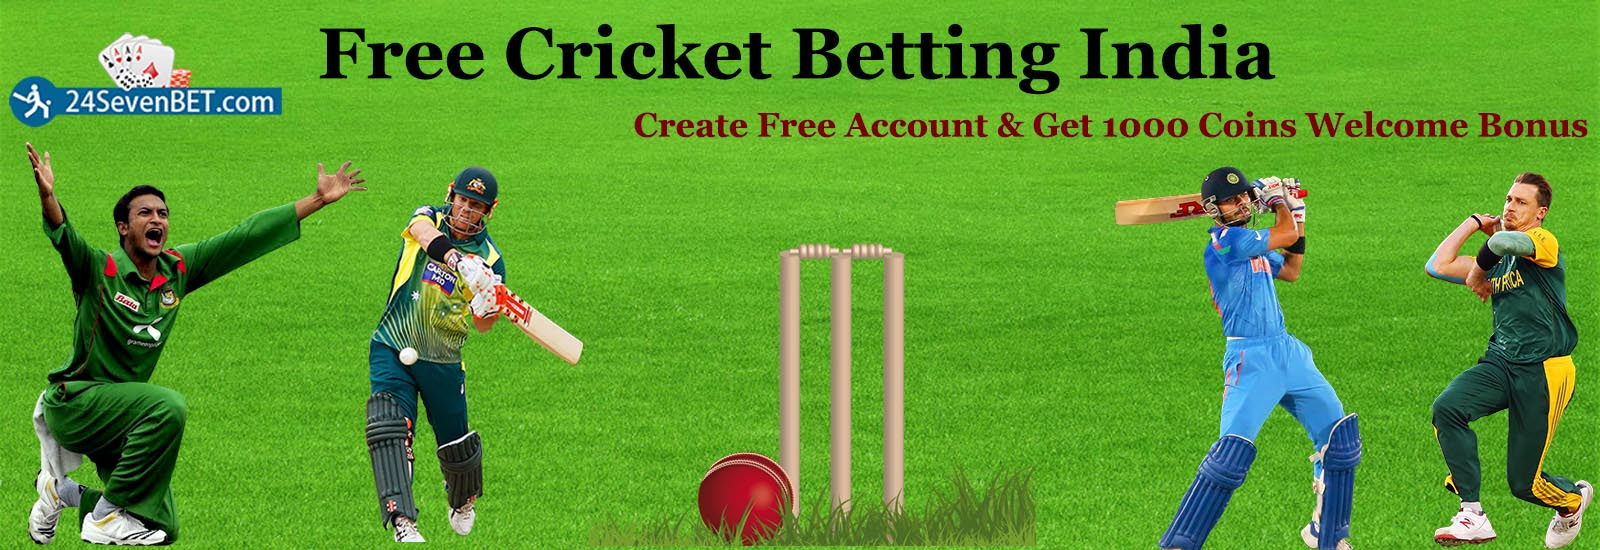 Online cricket betting games for final four online binary options trading brokers